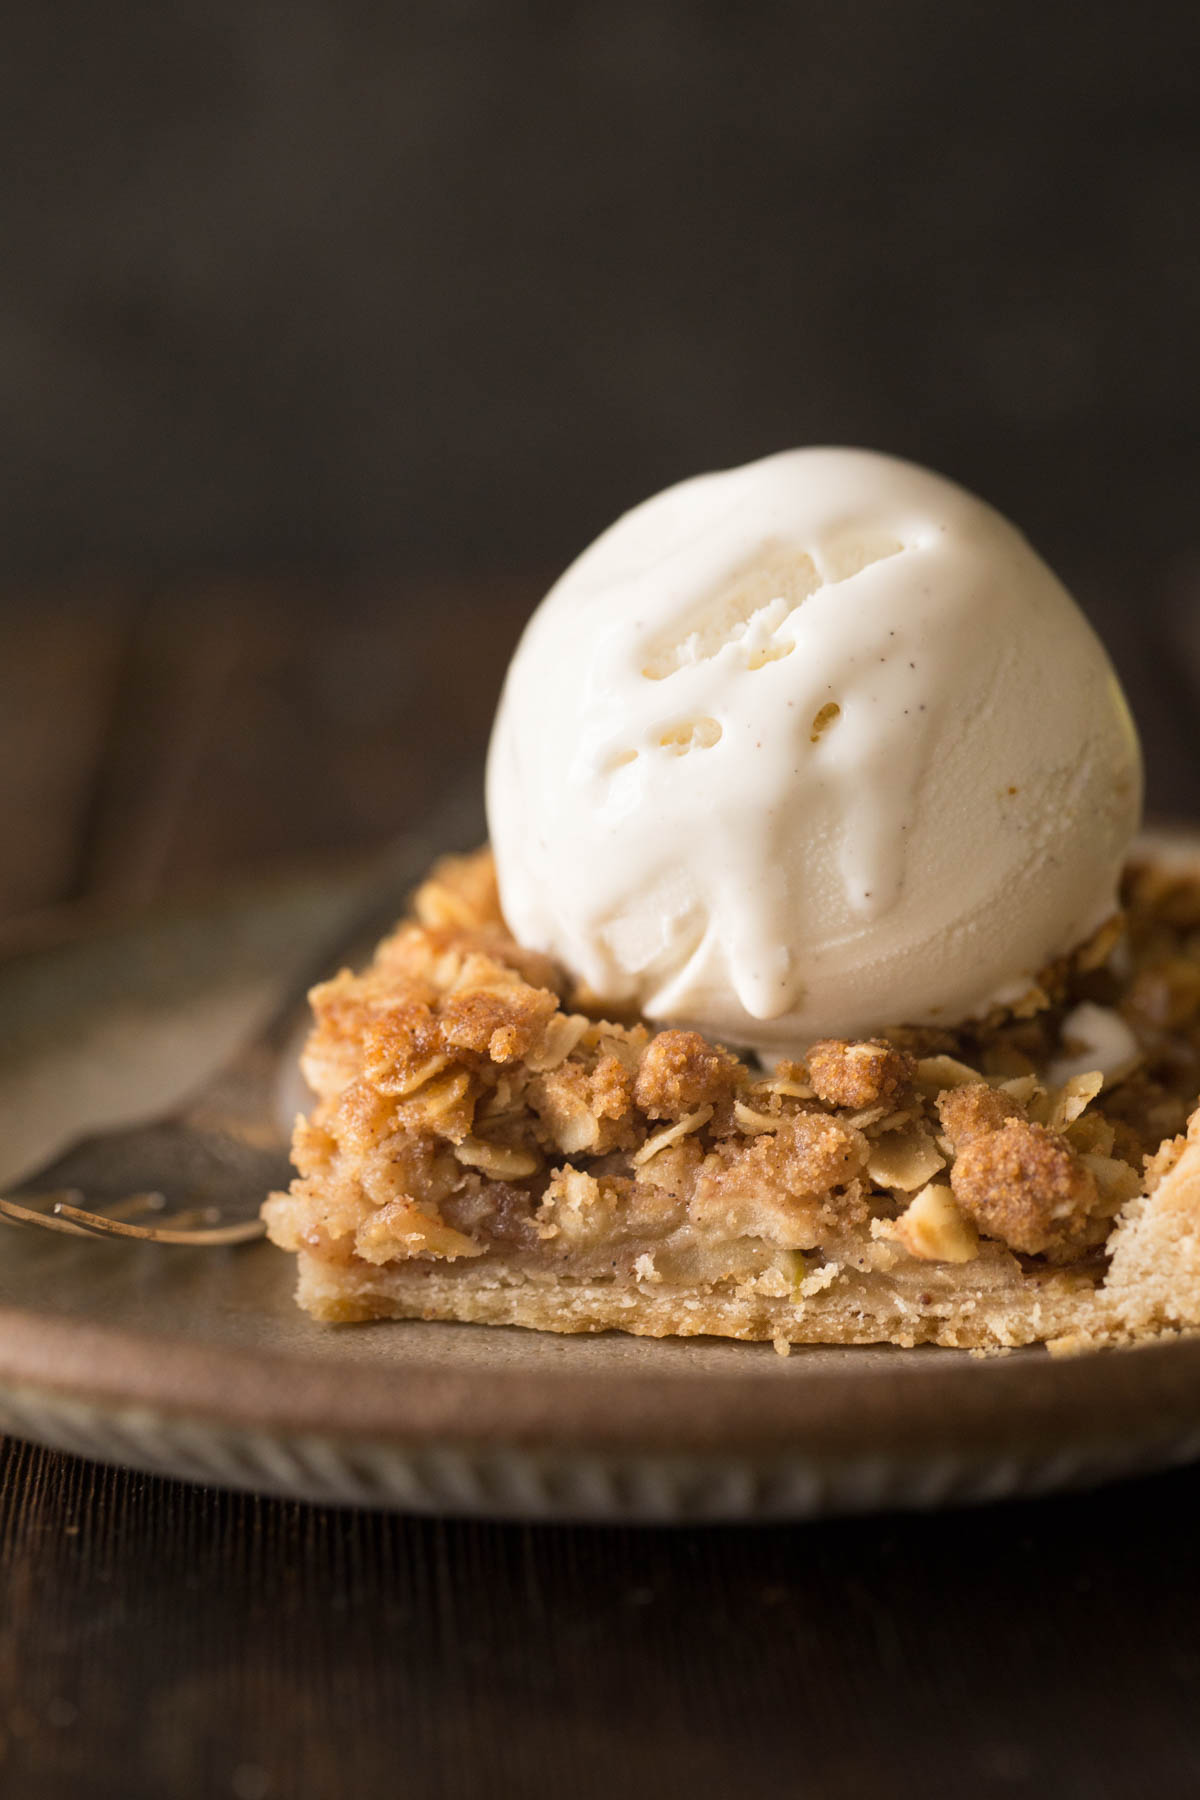 A close up view of a square of Dutch Apple Slab pie on a plate with a scoop of vanilla ice cream on top.